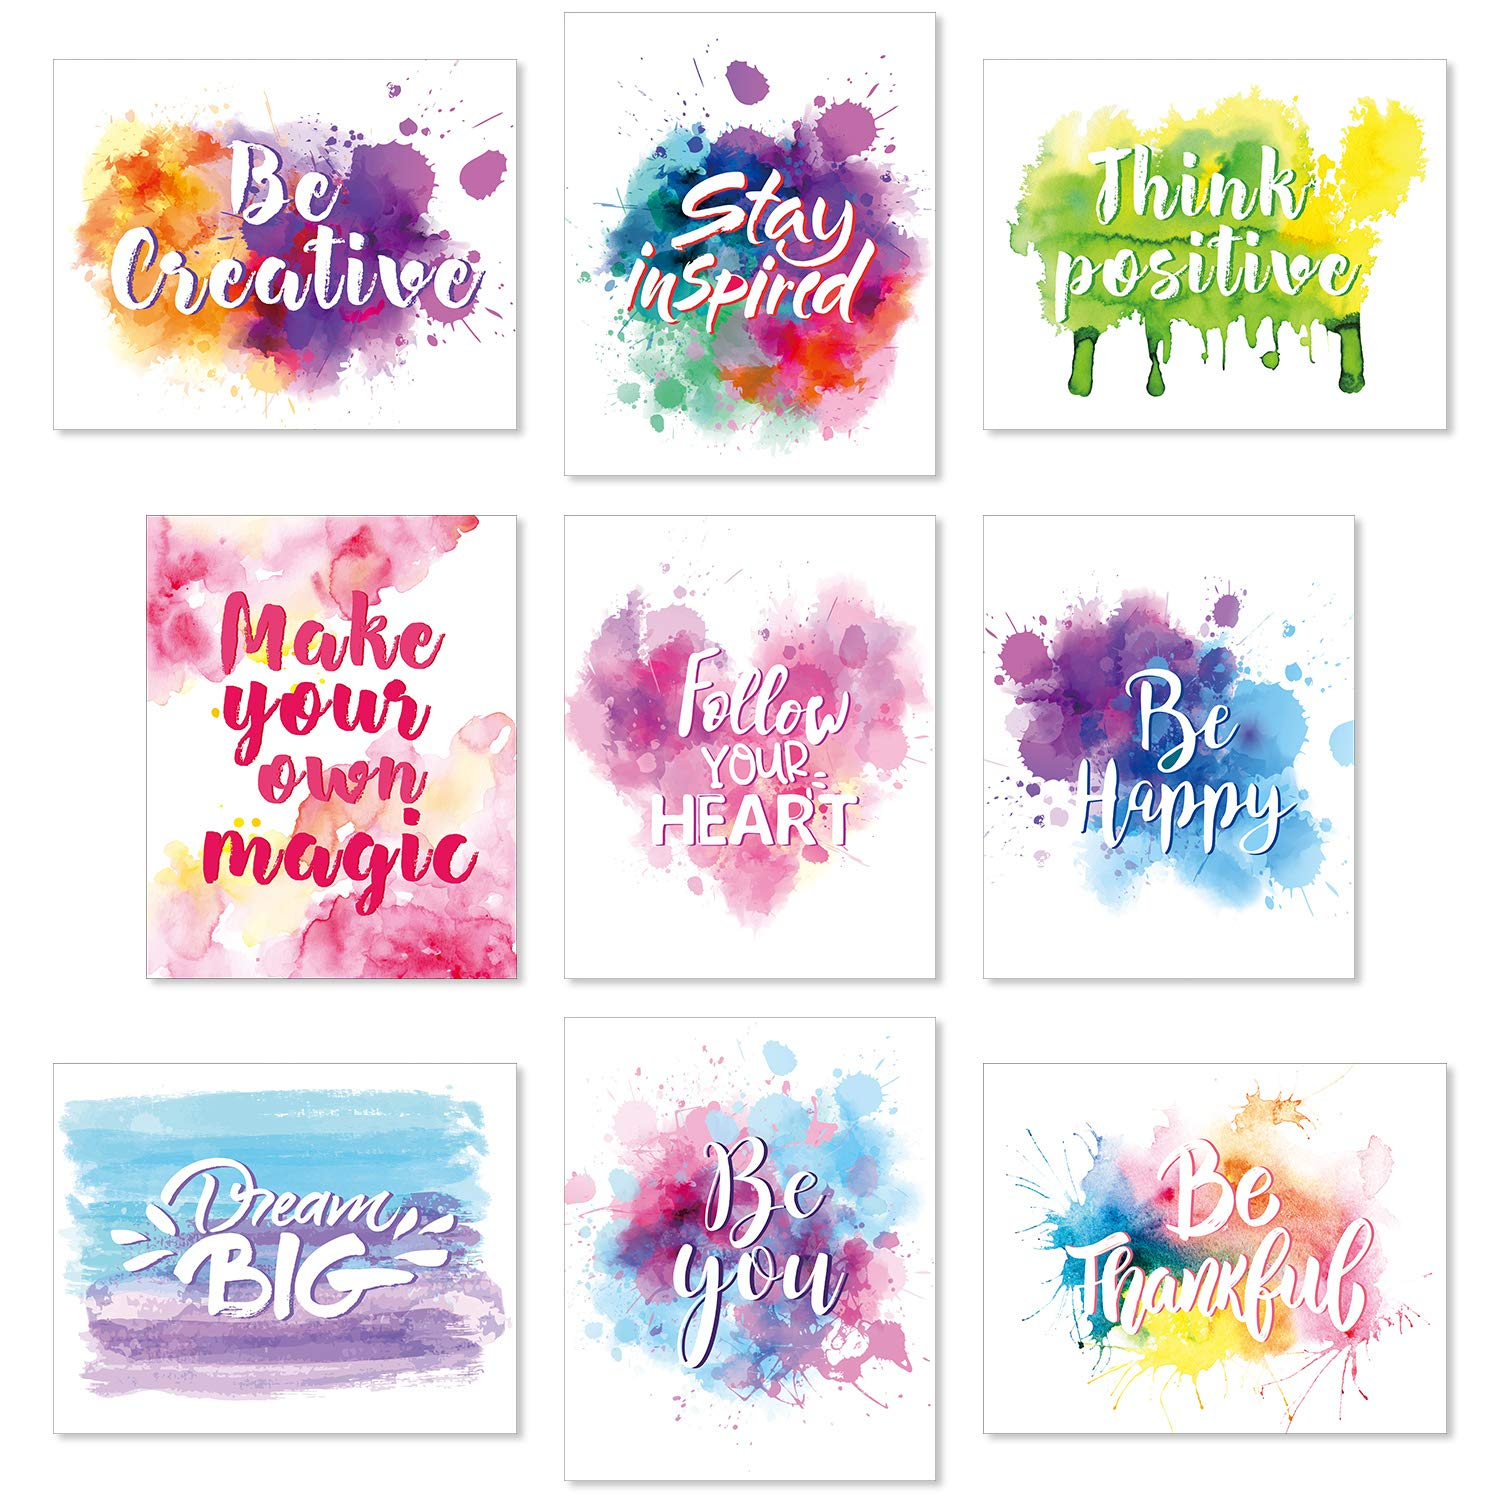 Set of 9 Watercolor Inspirational Wall Art Prints Abstract Paint Motivational Quote Phrases Posters for Living Room Office Classroom Kids Room Decoration 8 x 10 Inch Unframed